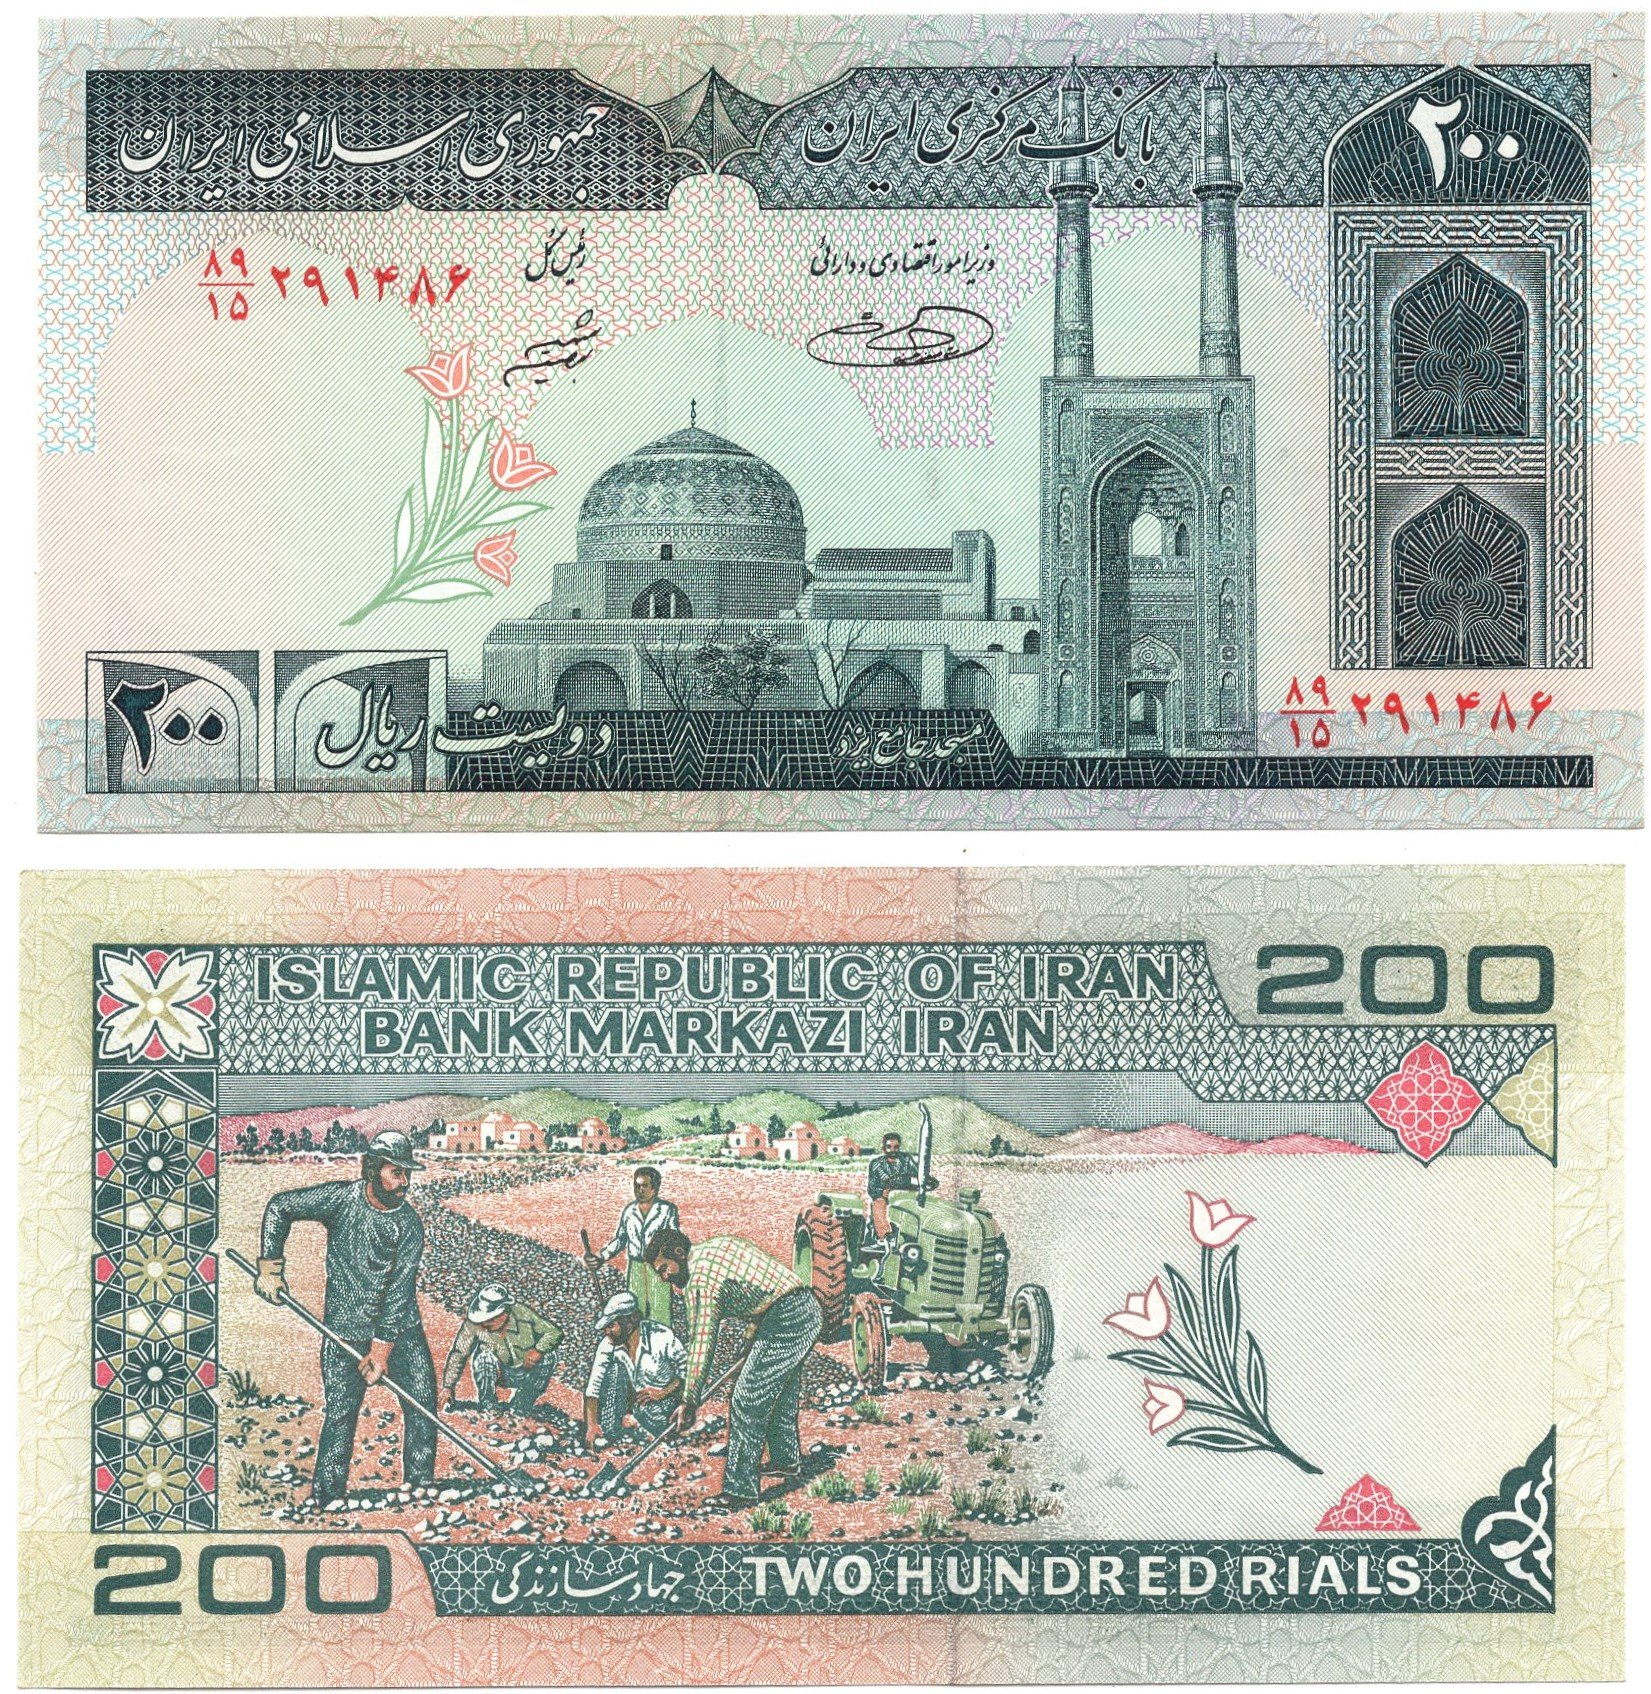 Iran 200 rials banknote for sale